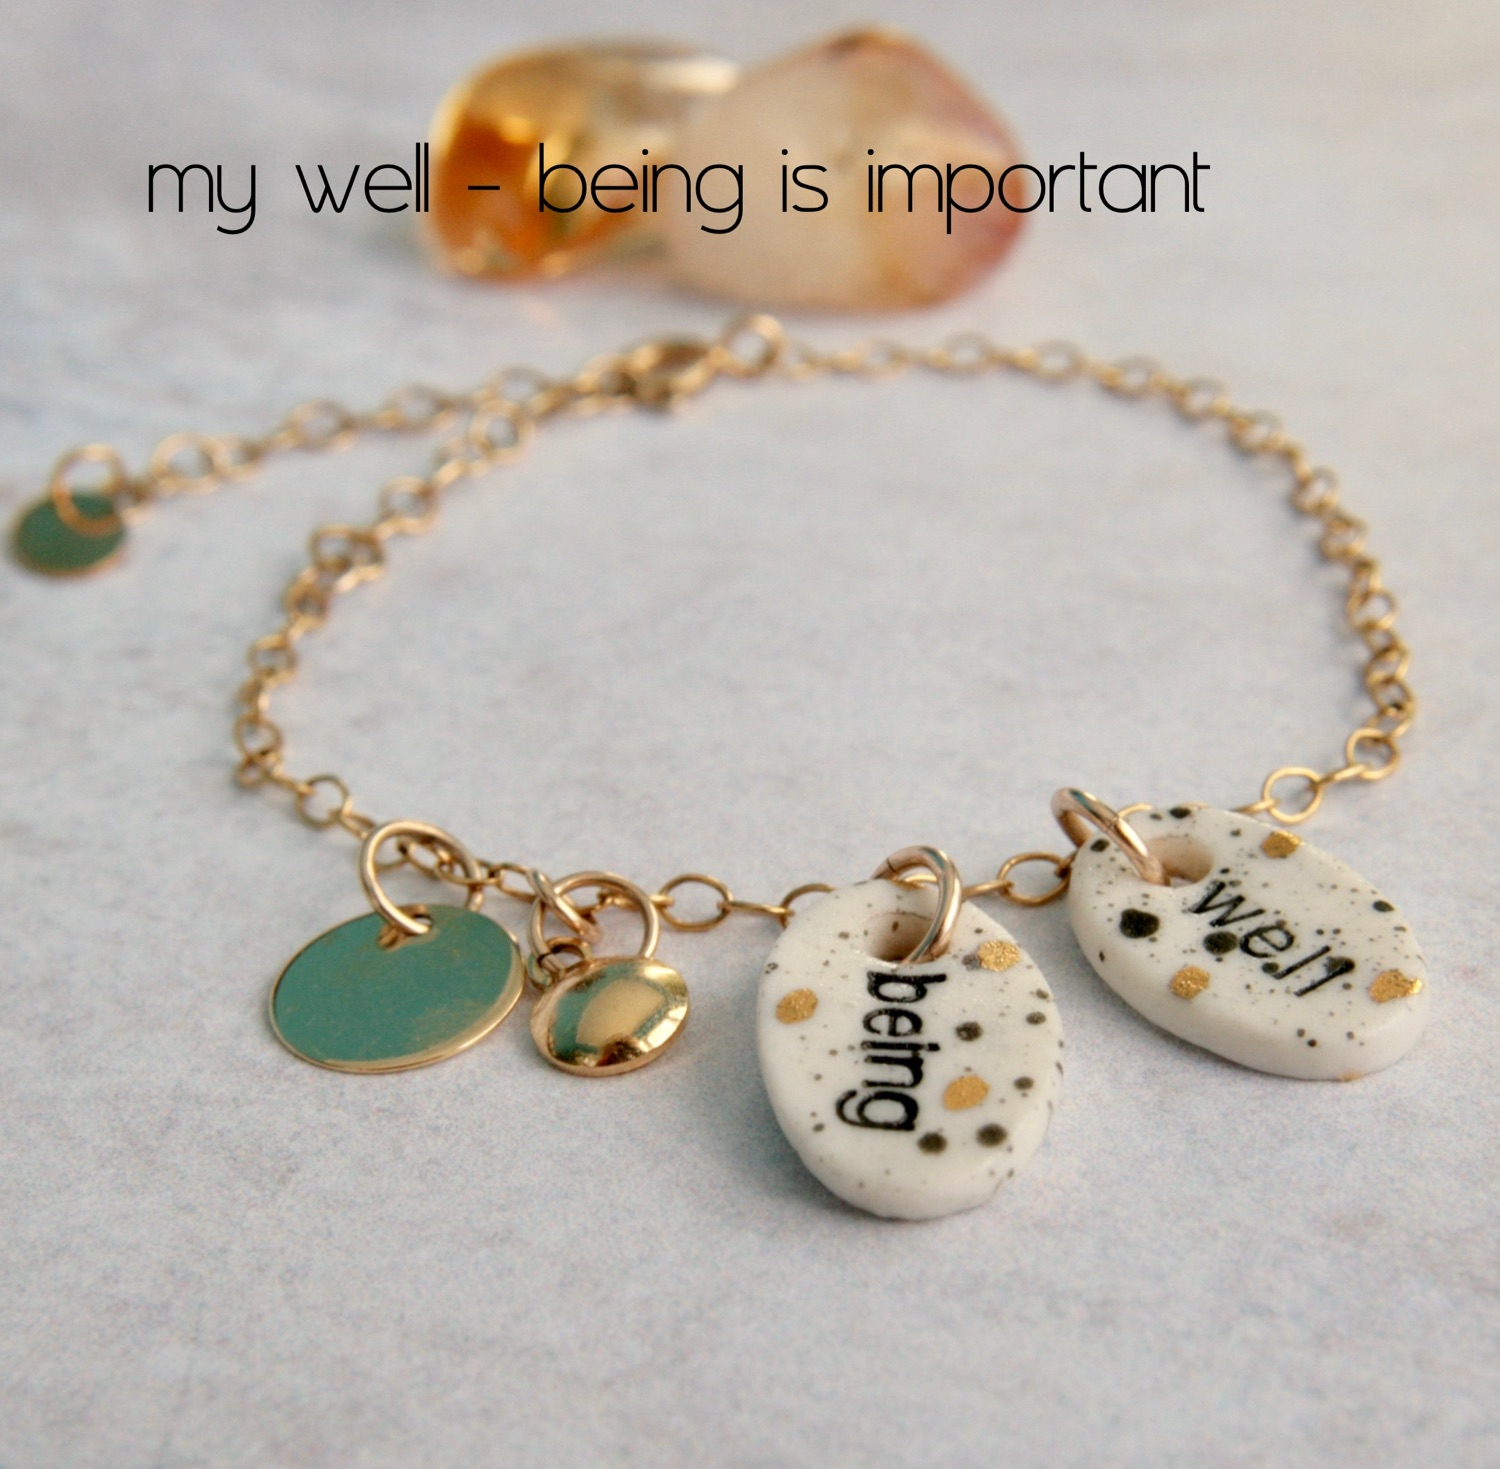 gold bracelet with charms